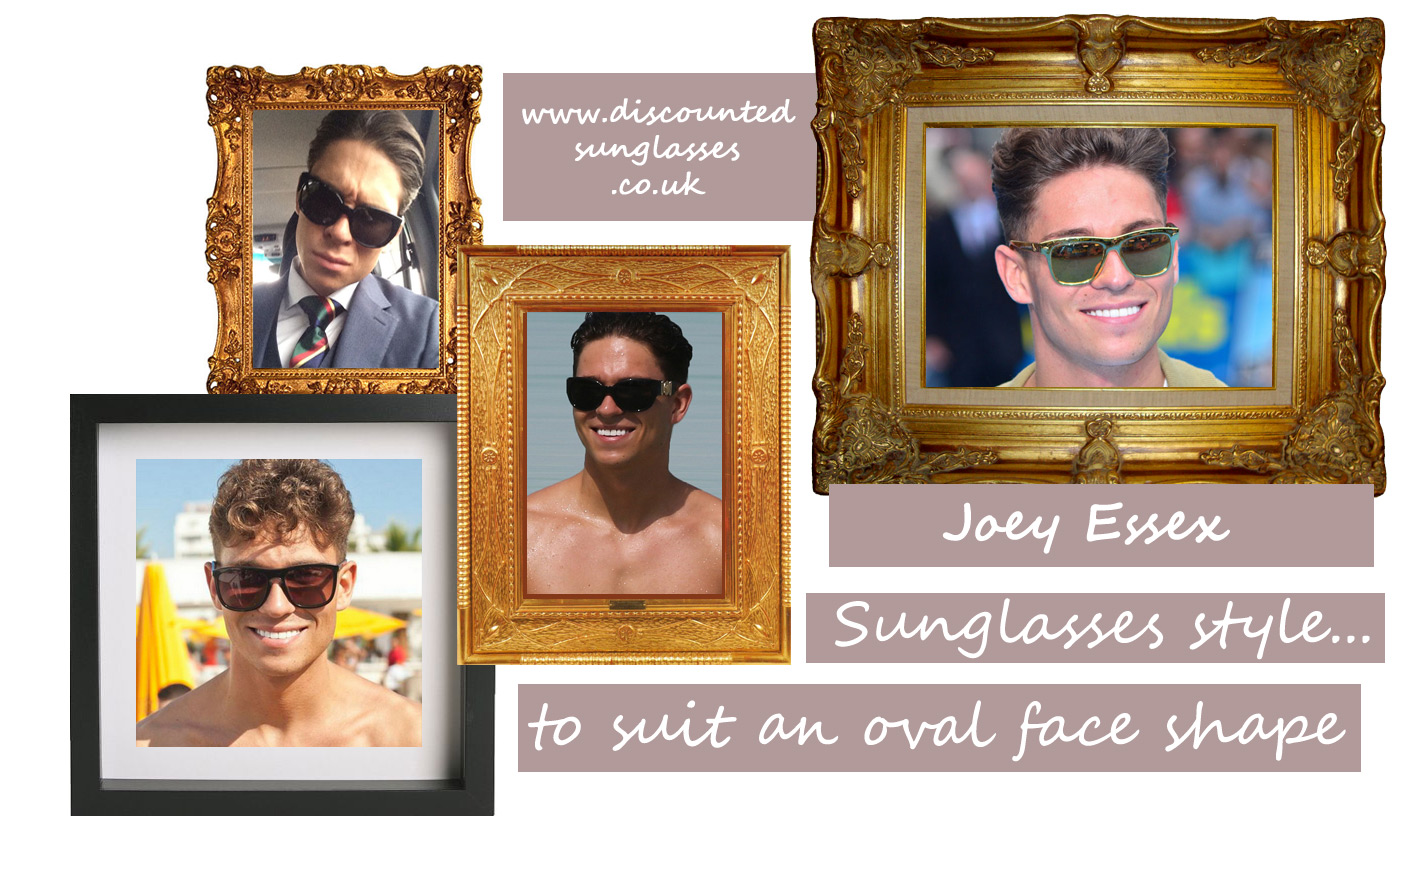 JOEY ESSEX SUNGLASSES a focal point as he films his new TV program